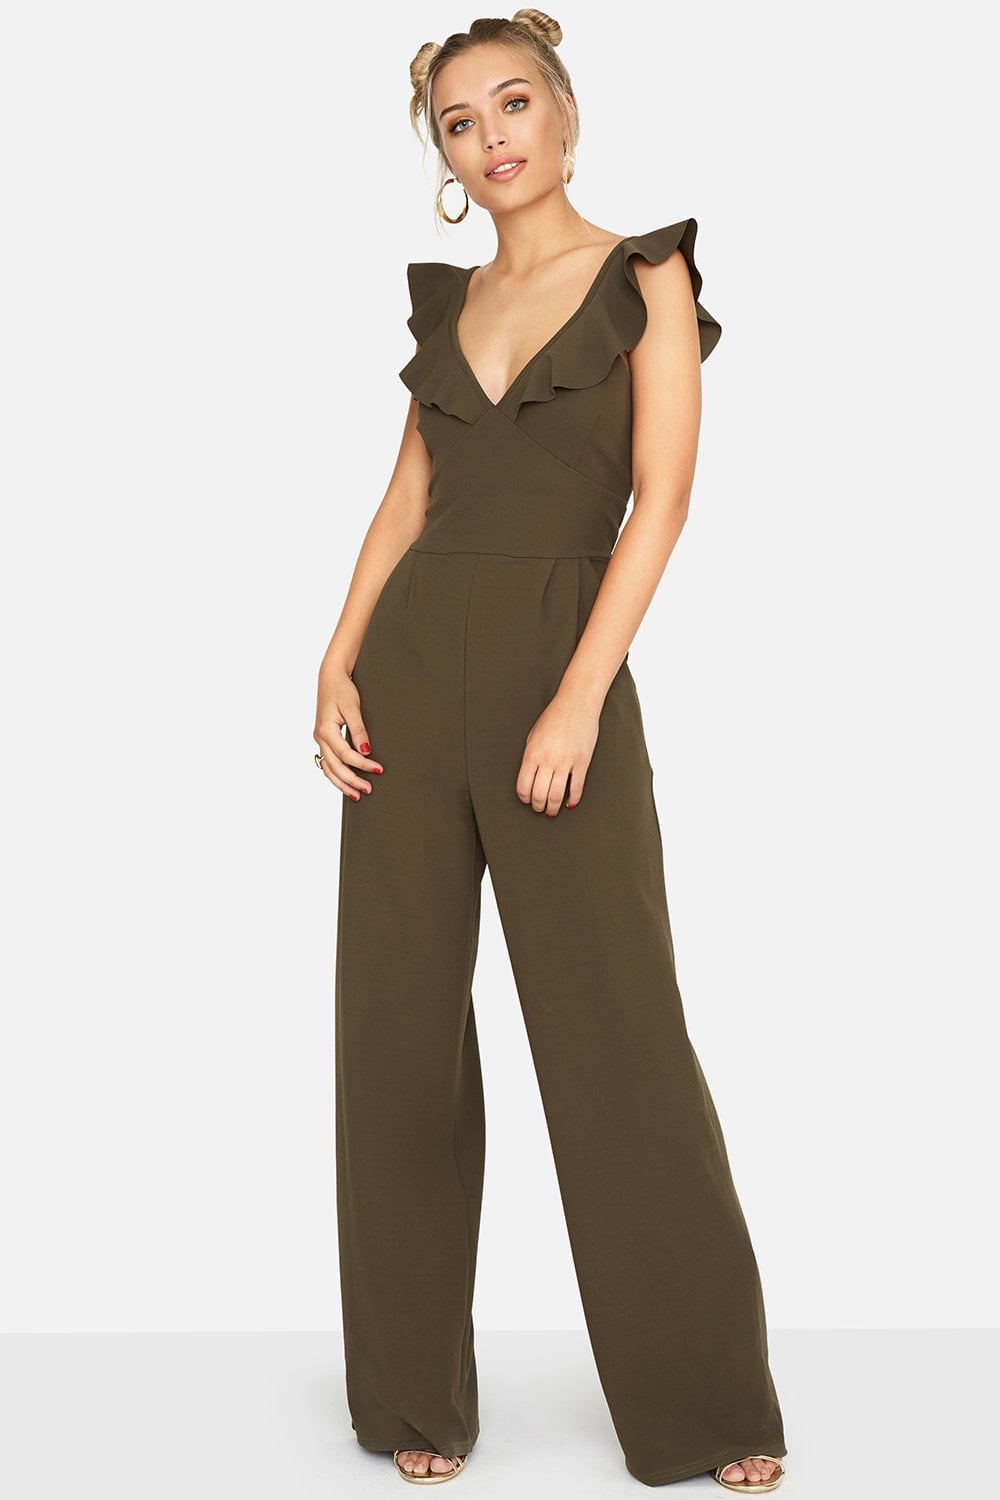 18ac738471f Outlet Girls On Film Sabor Frill Jumpsuit - Outlet Girls On Film from Little  Mistress UK